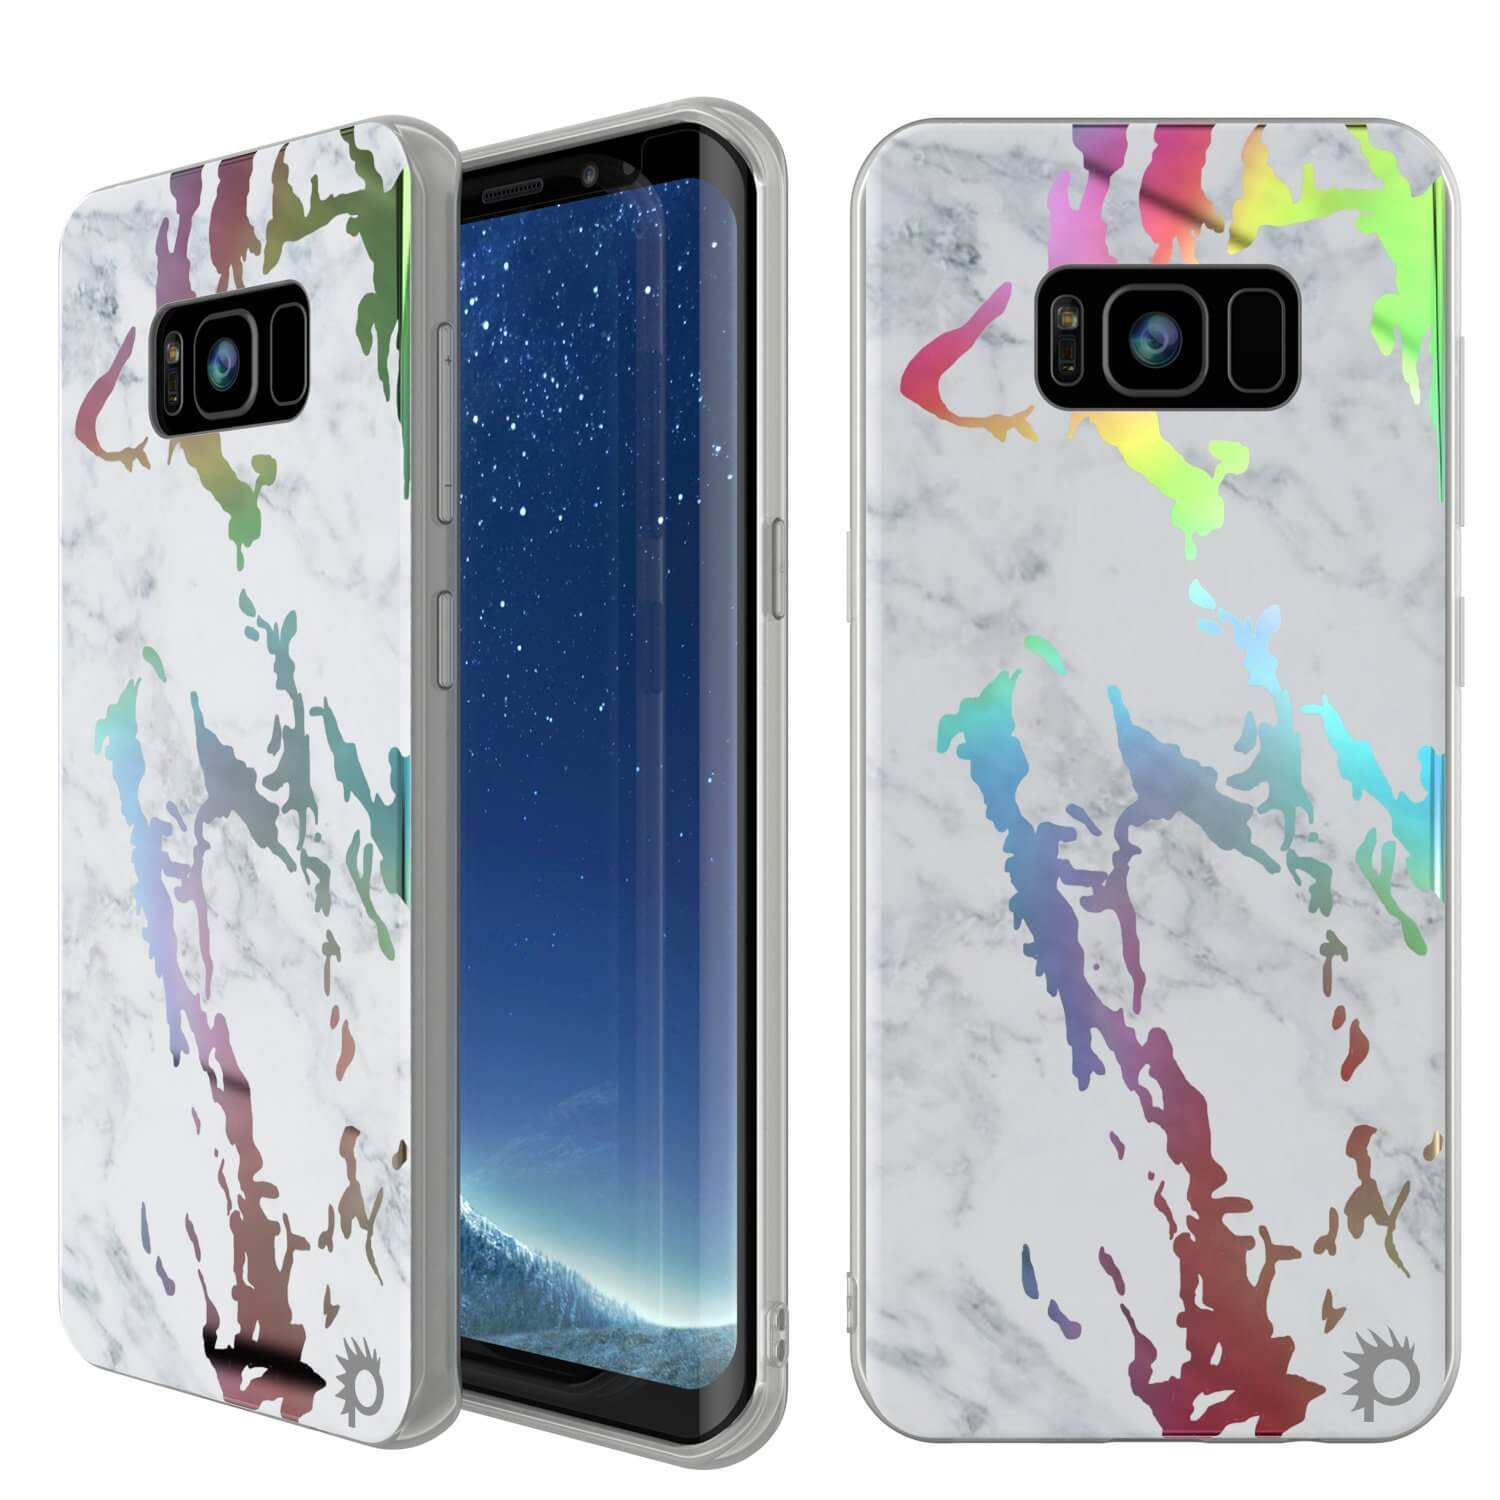 Galaxy S8 Plus Marble Case Protective Full Body Cover[Blanco Marmo]